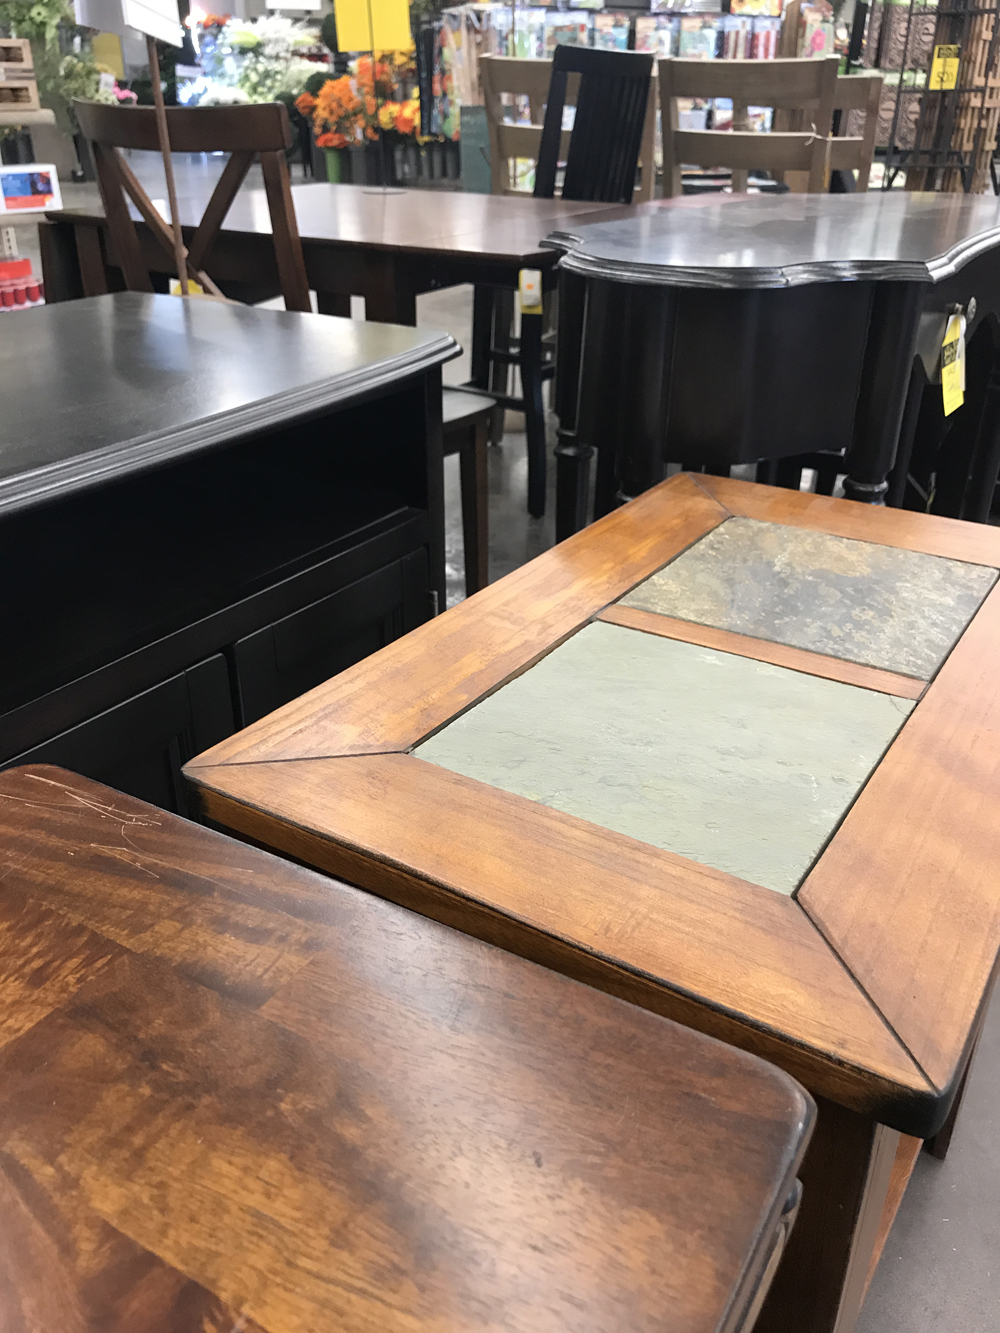 Furniture at Jeffrey Alans, 4 locations in Illinois & Indiana – 2017 July Summer Yard Sale – Selection will vary with each store having a unique mix of items to discover.